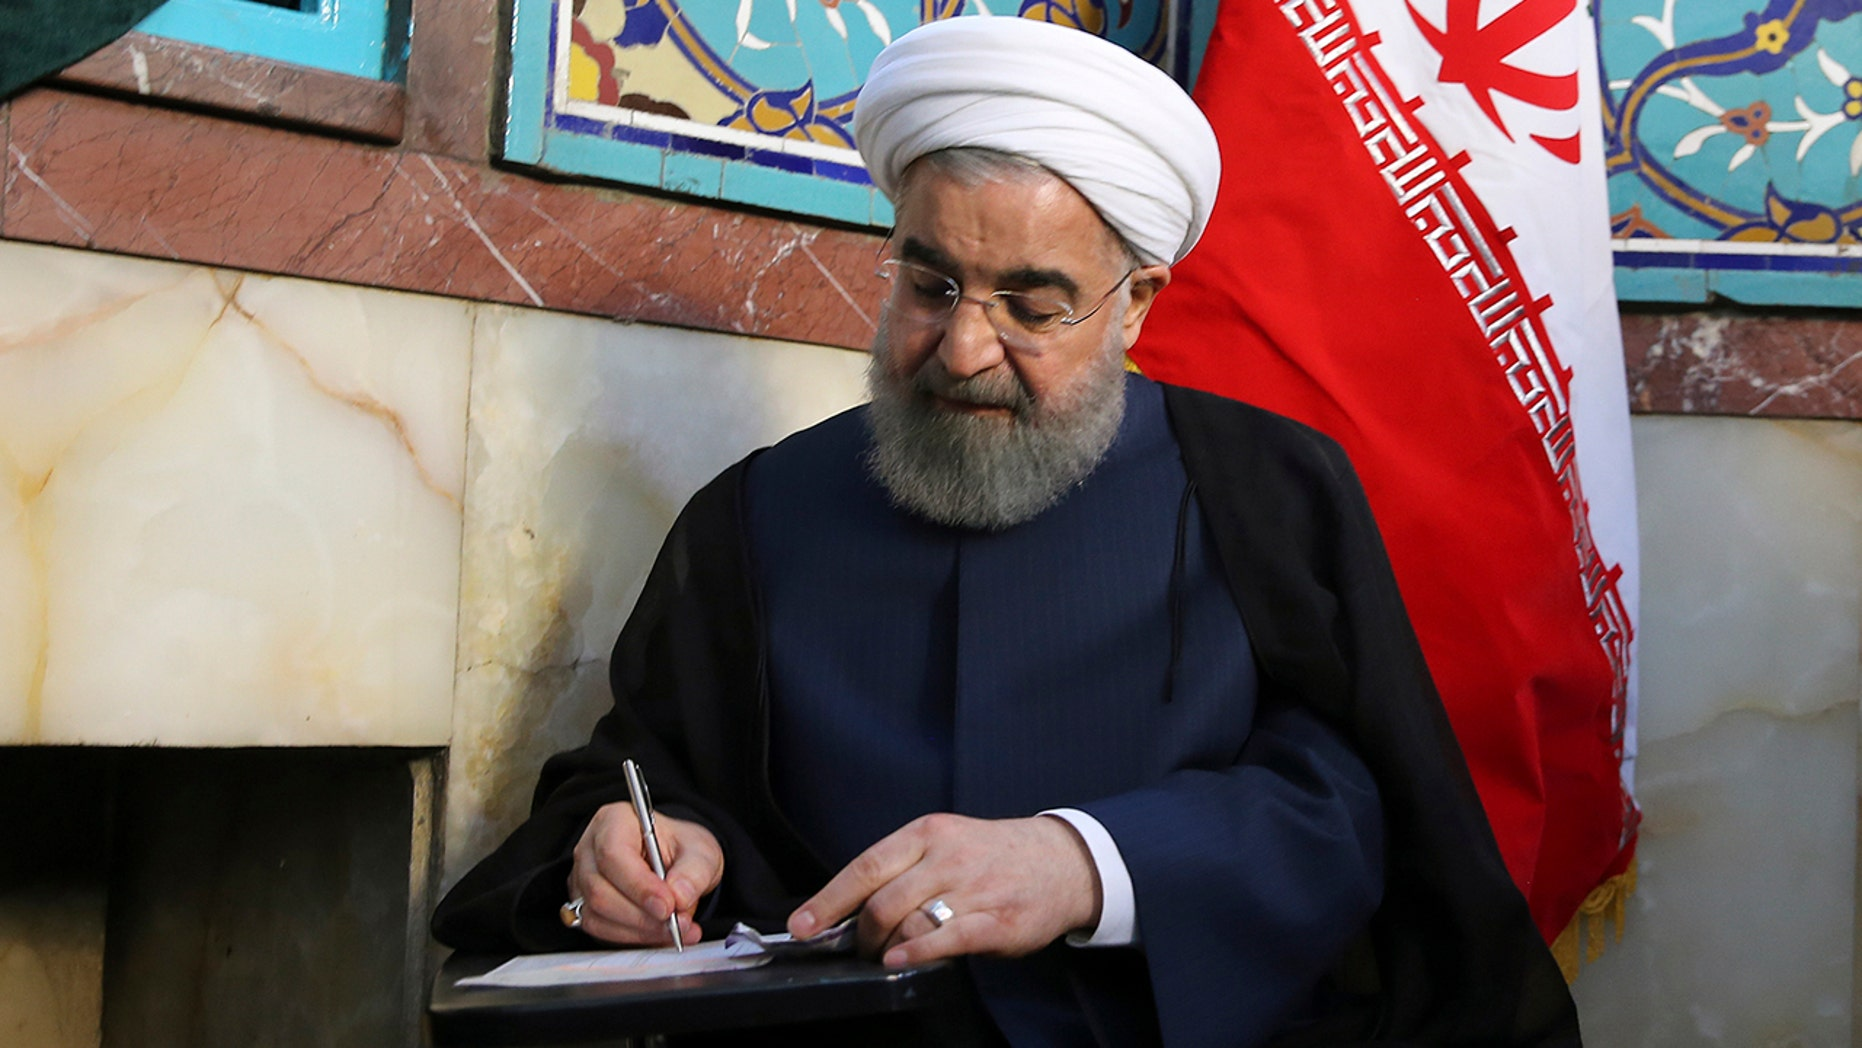 In this photo released by official website of the office of the Iranian Presidency, President Hassan Rouhani fills in his ballot while voting for the presidential and municipal councils election at a polling station in Tehran, Iran, Friday, May 19, 2017.